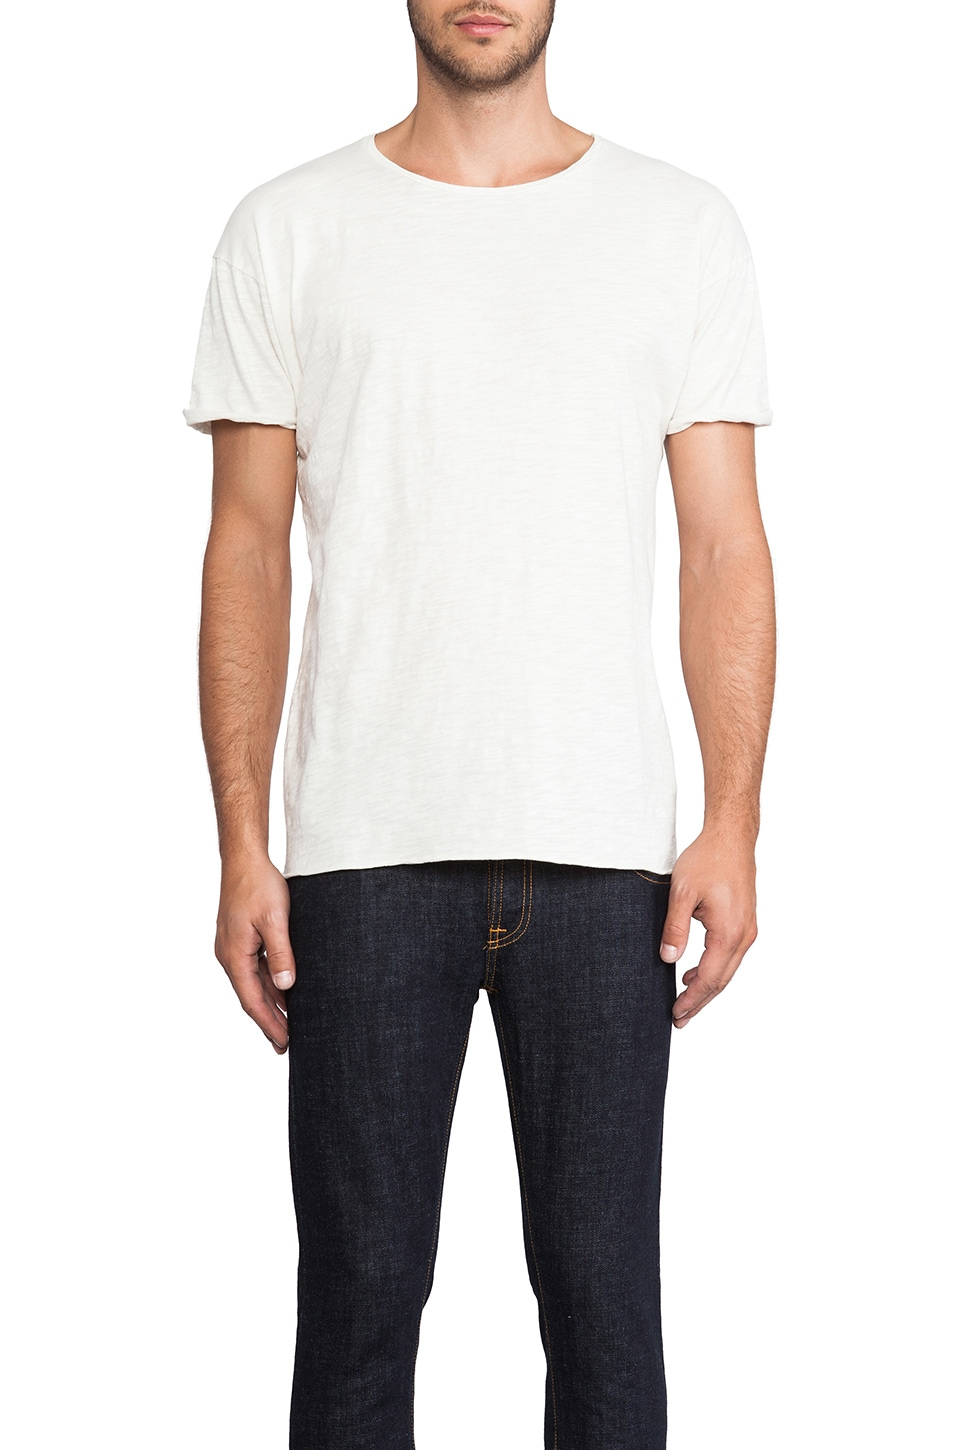 Nudie Jeans Round Neck Tee in White